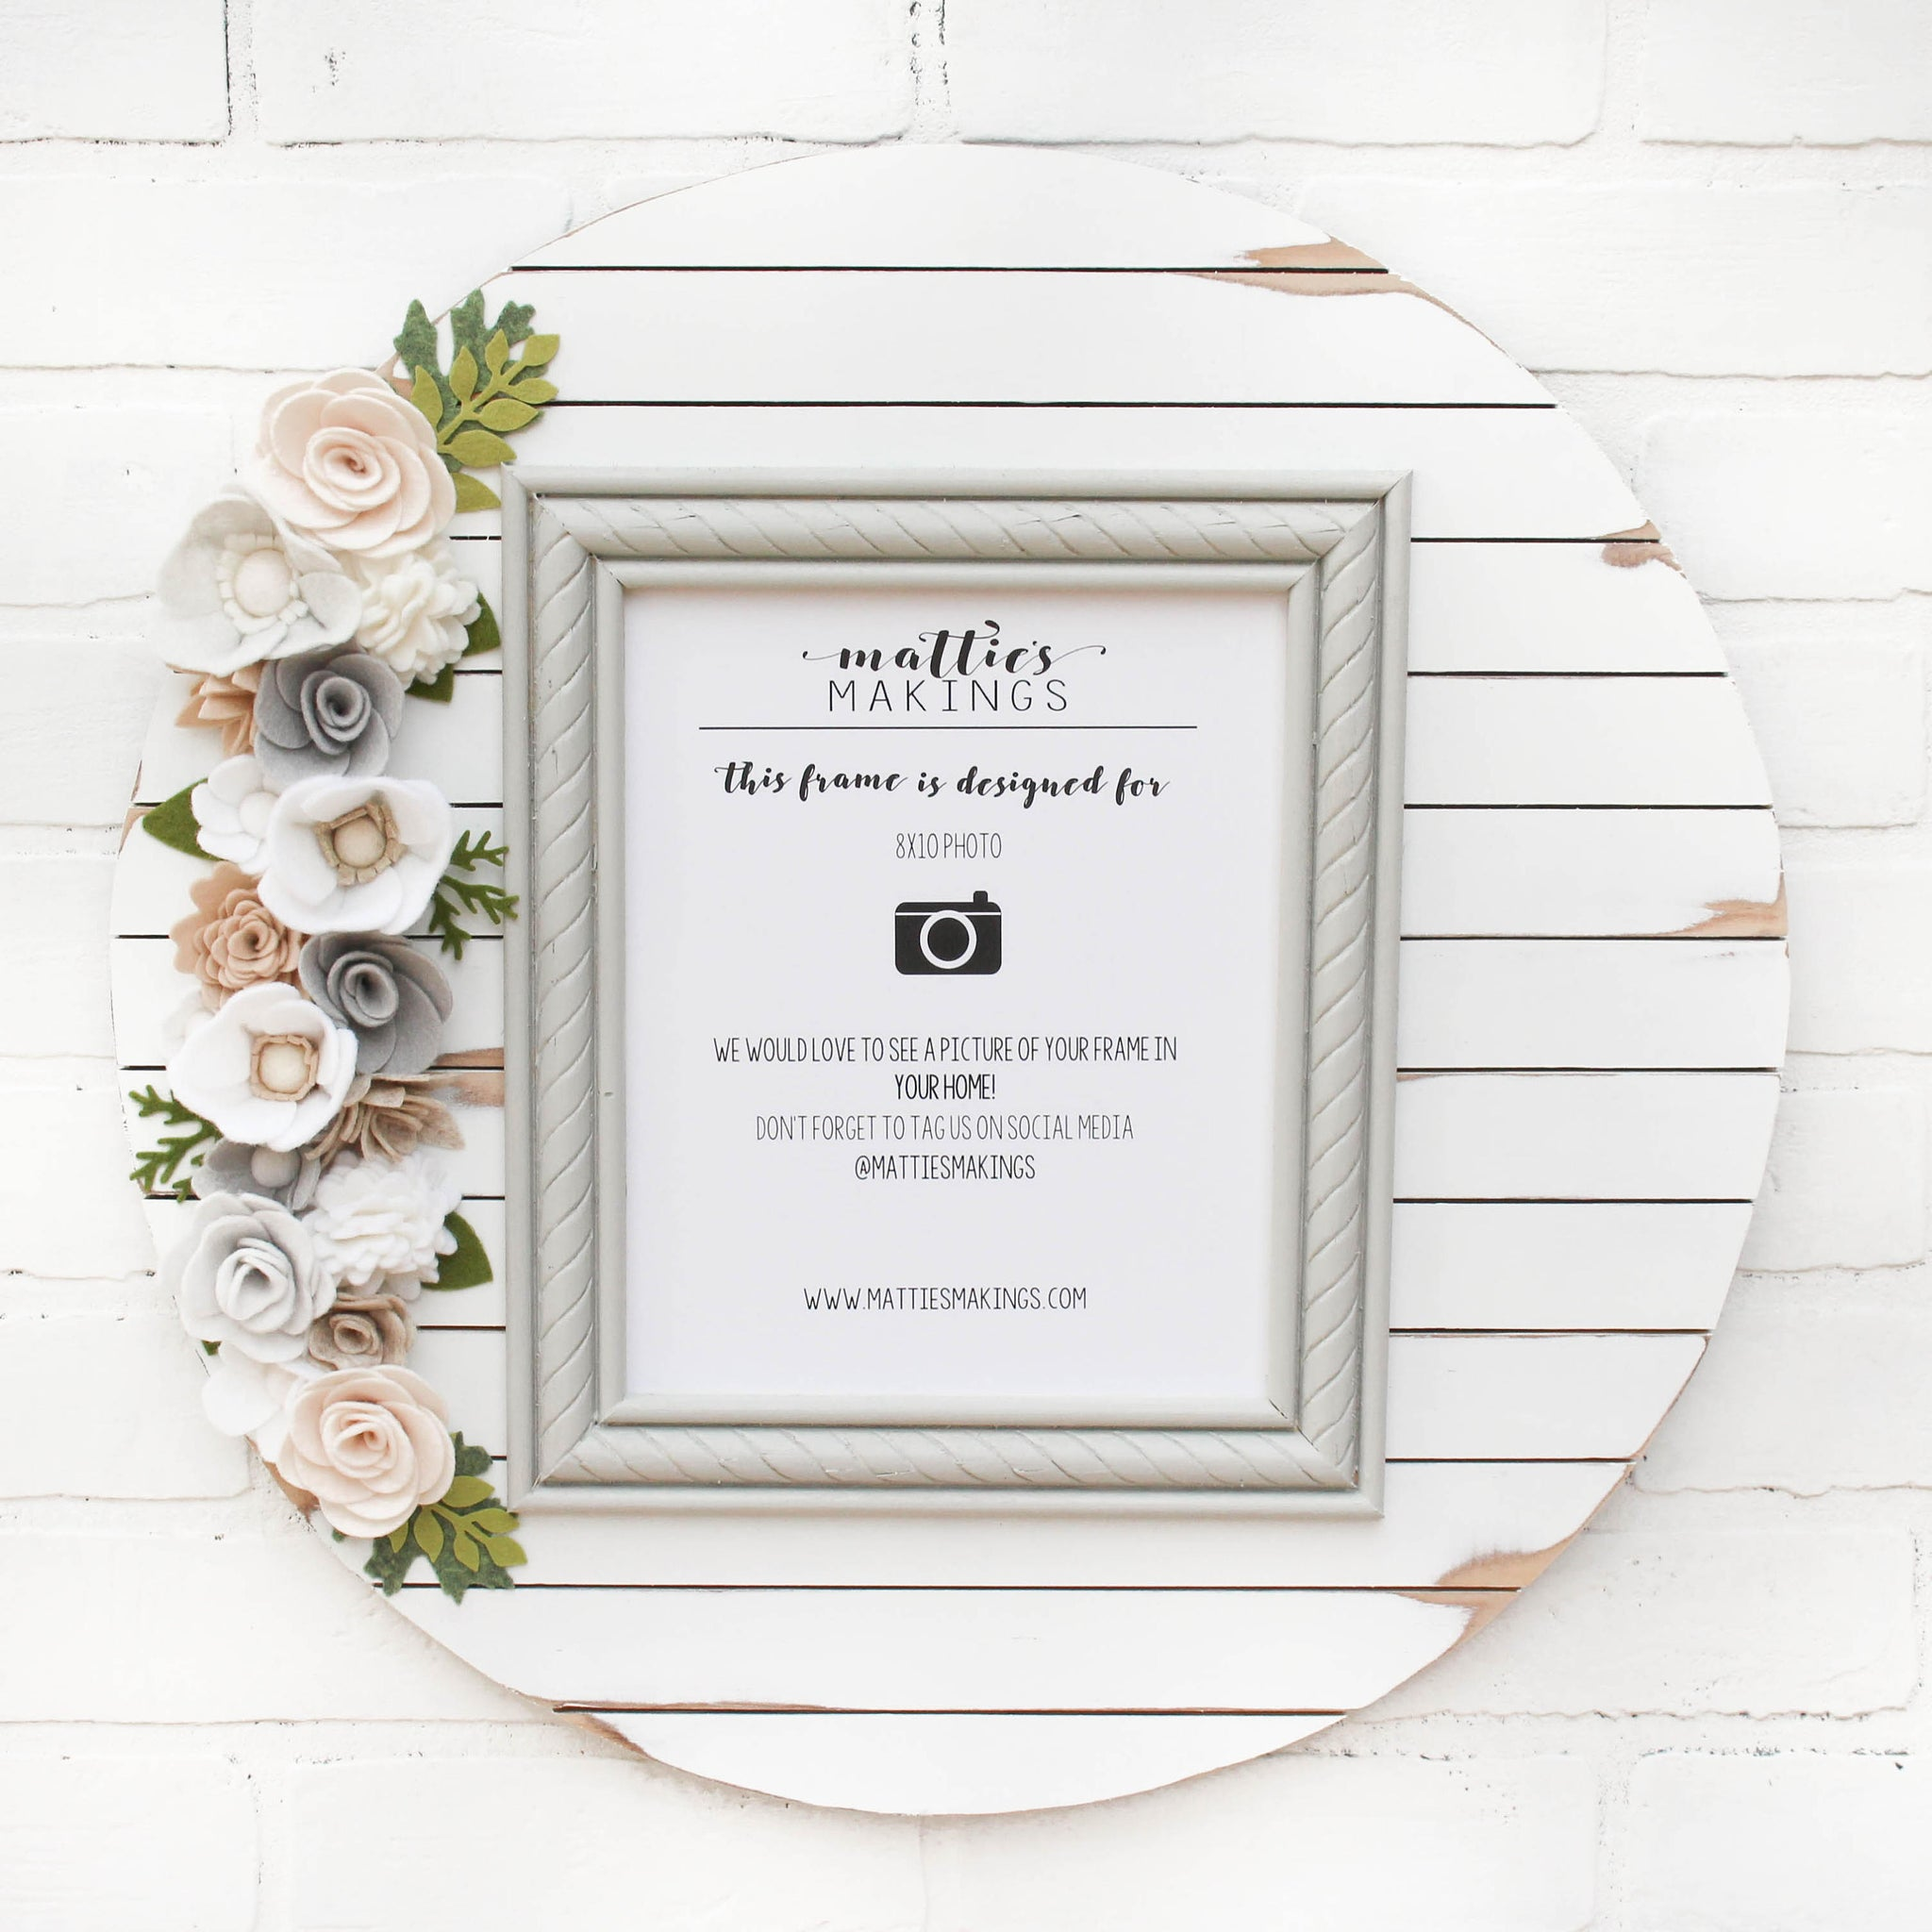 "Felt Floral Shiplap Frame, 19"" in size, 8x10 photo, above the crib ideas, god child keepsake, for daughter in law, sister in law gift"